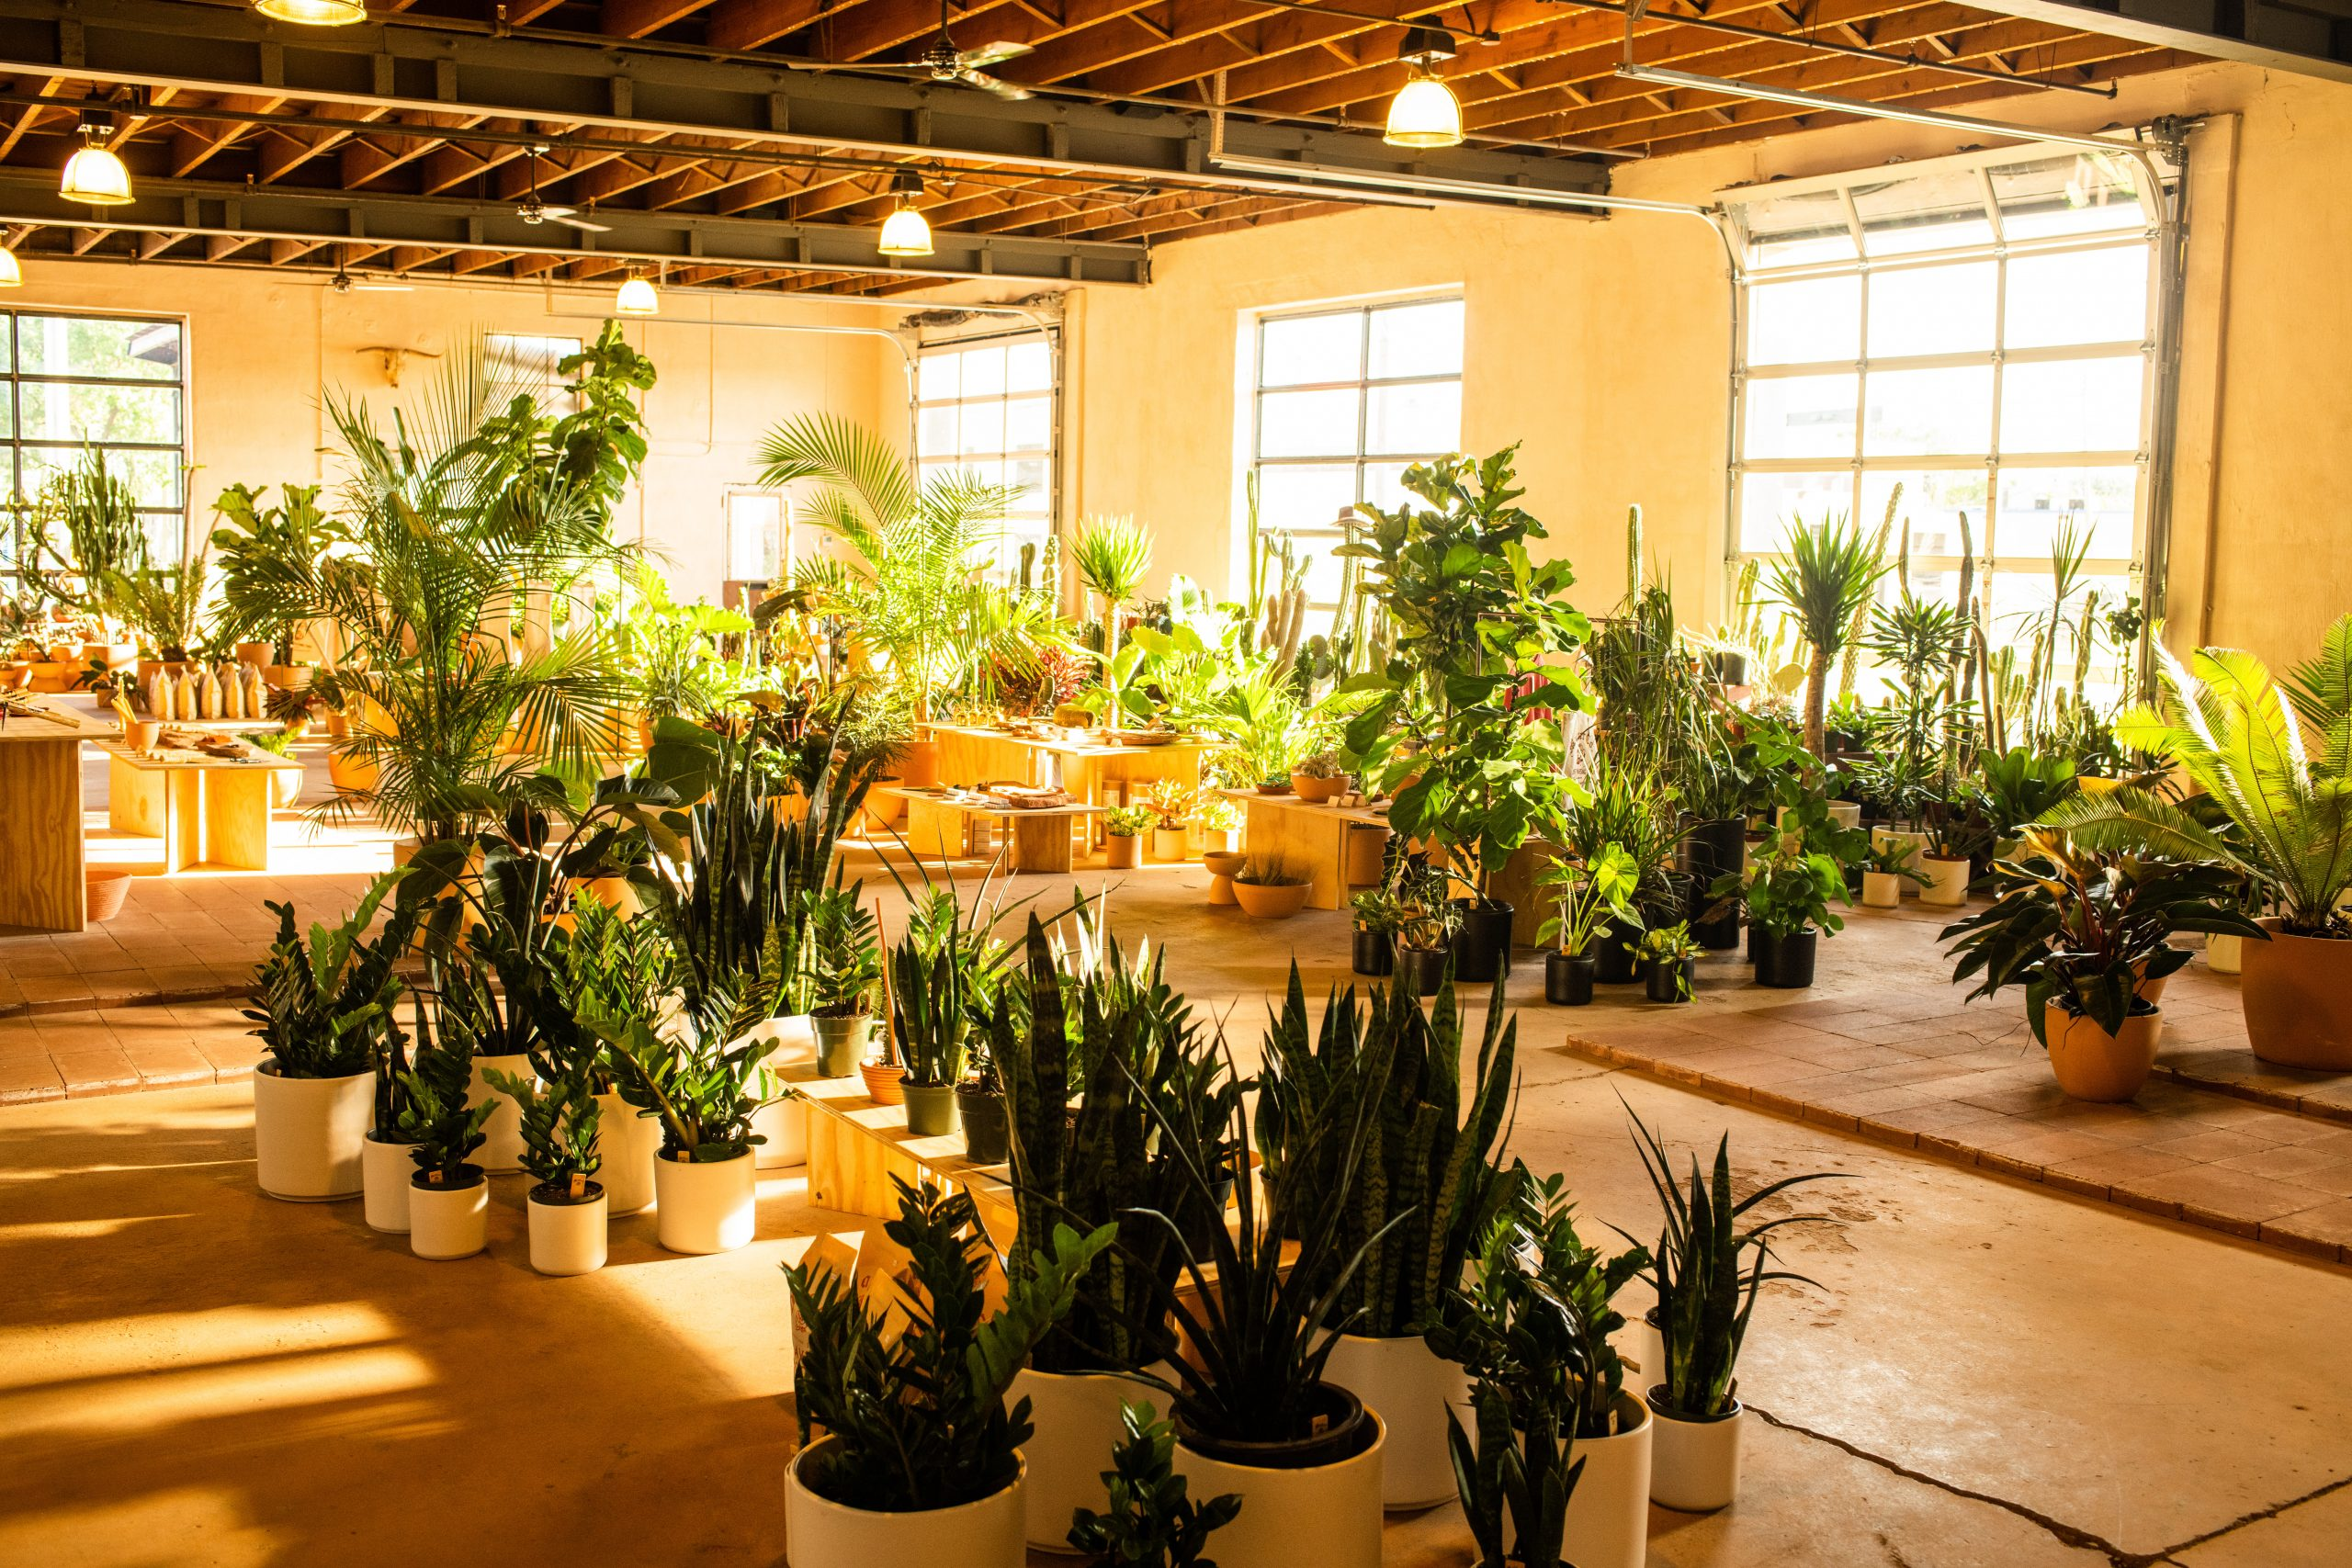 Photo of plants in Mother Co. plant store